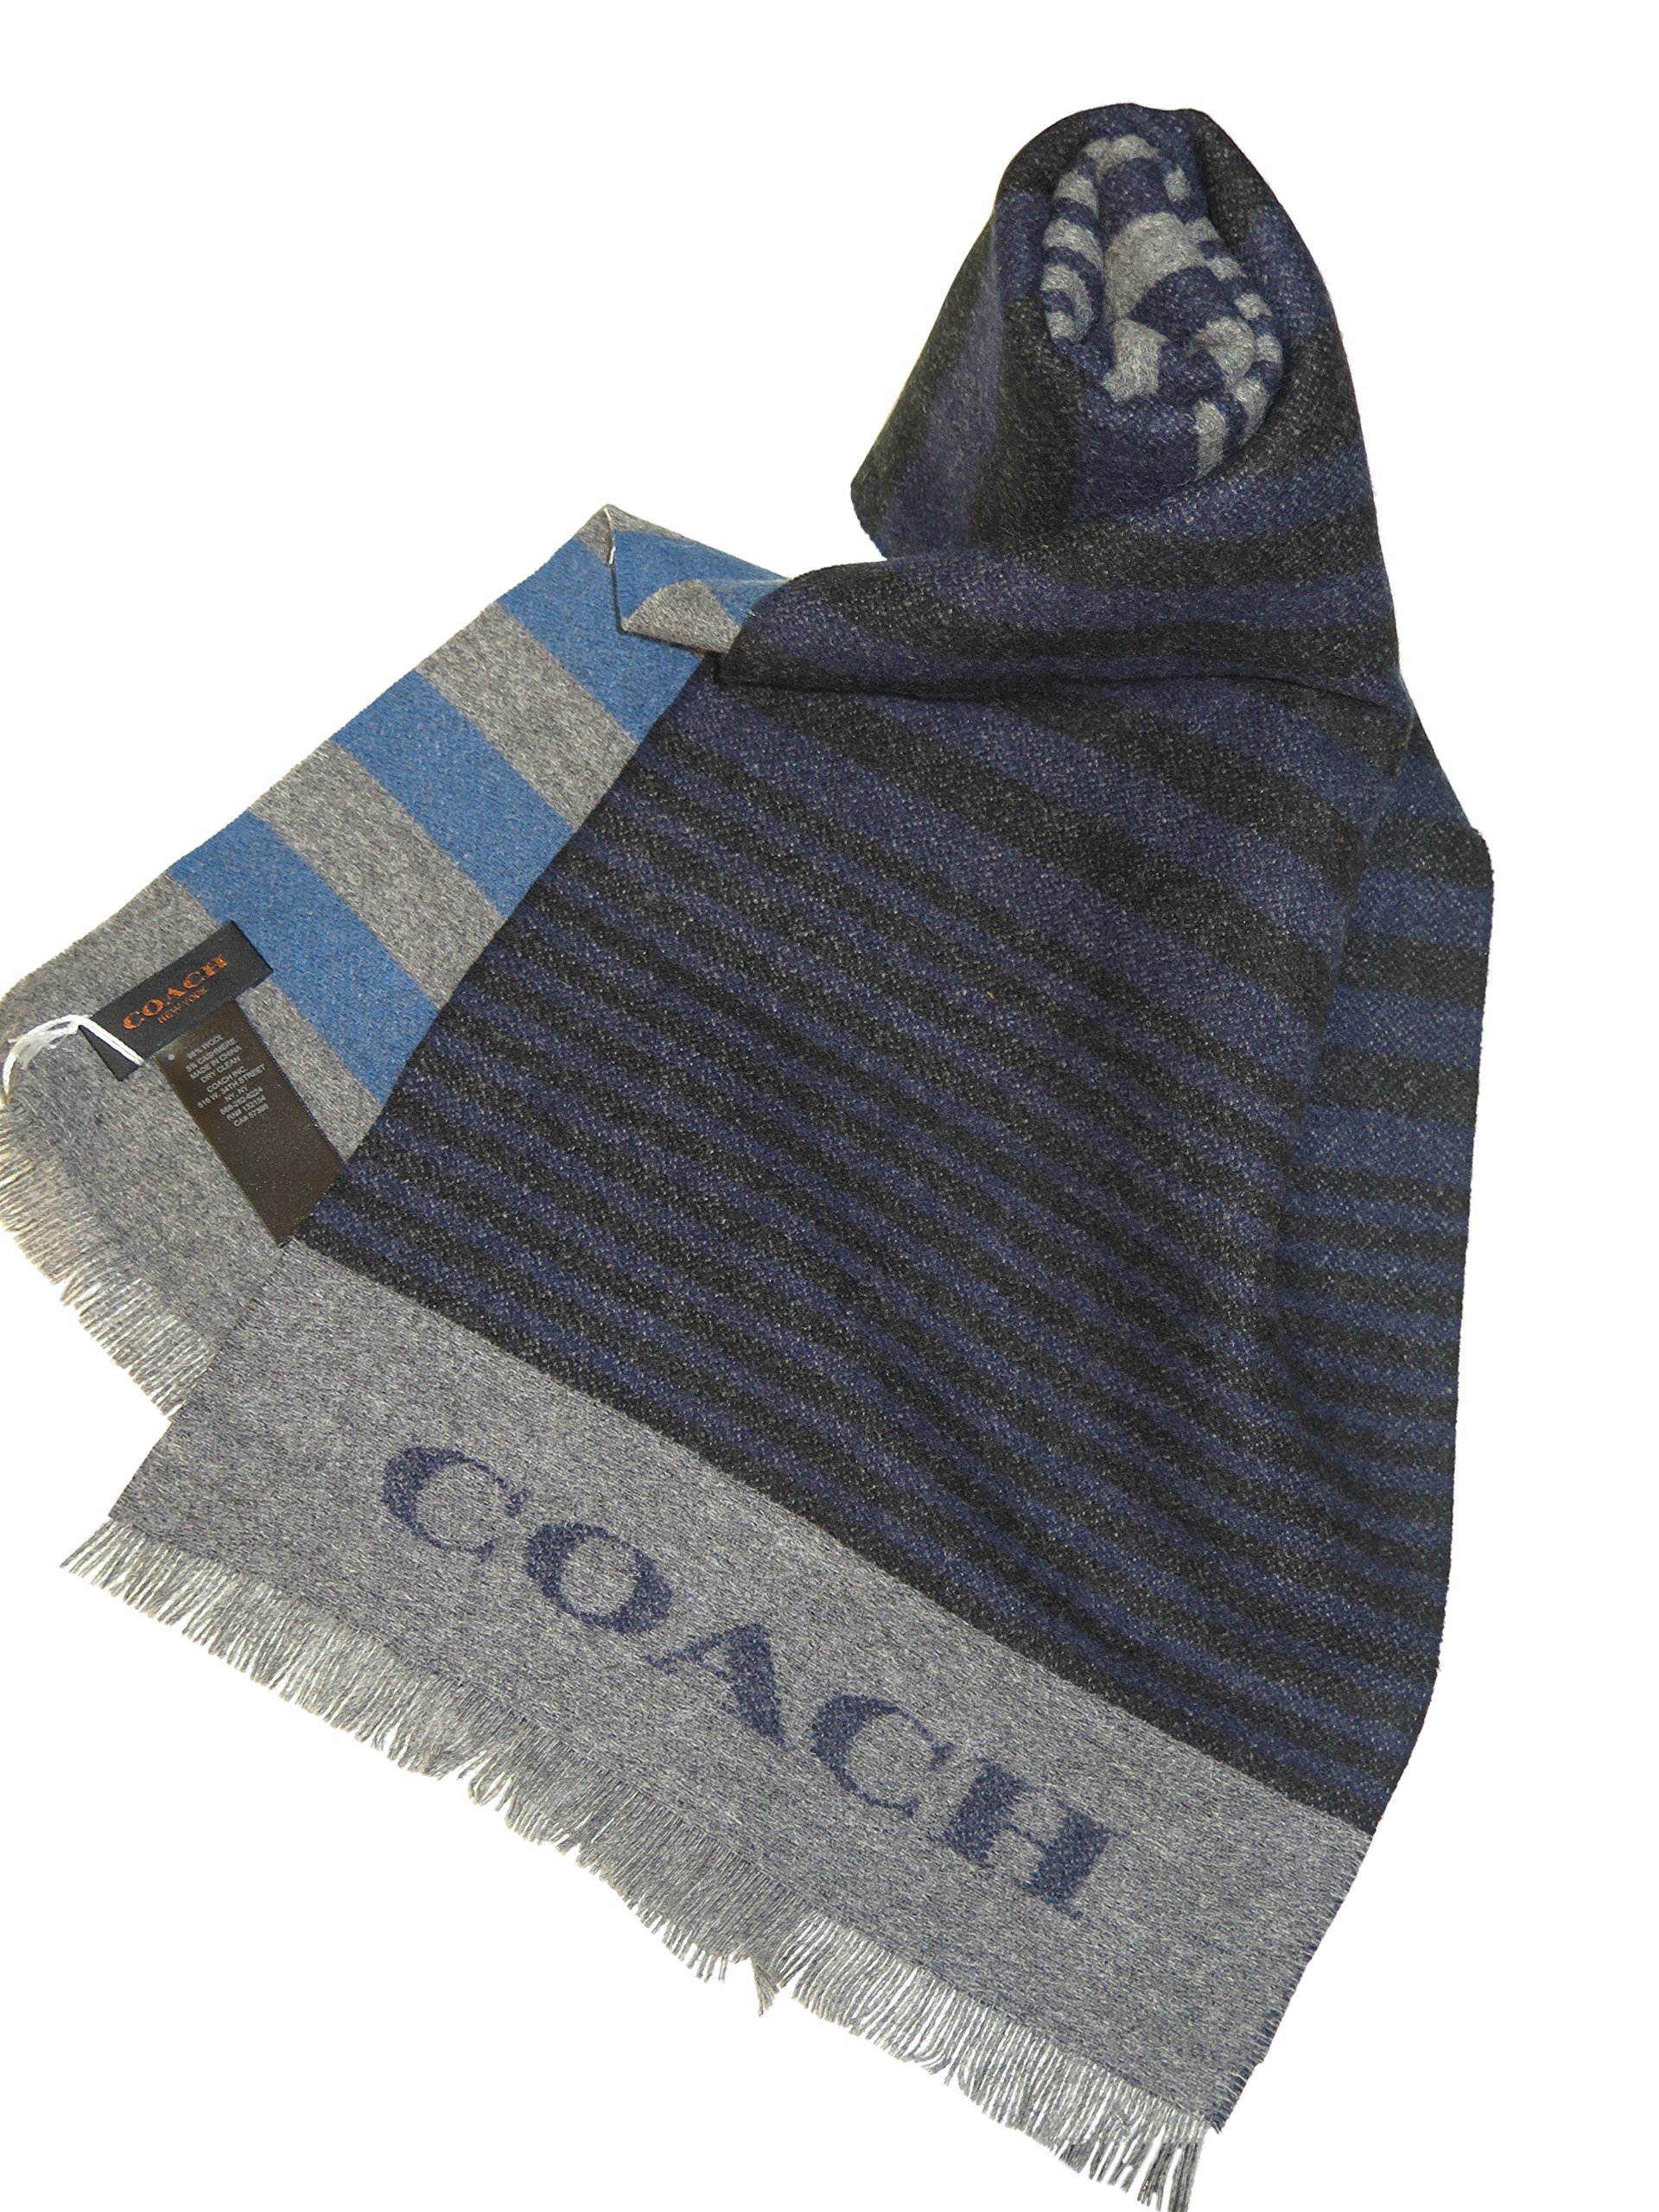 Coach Men's Blue Gray Striped Wool Cashmere Scarf